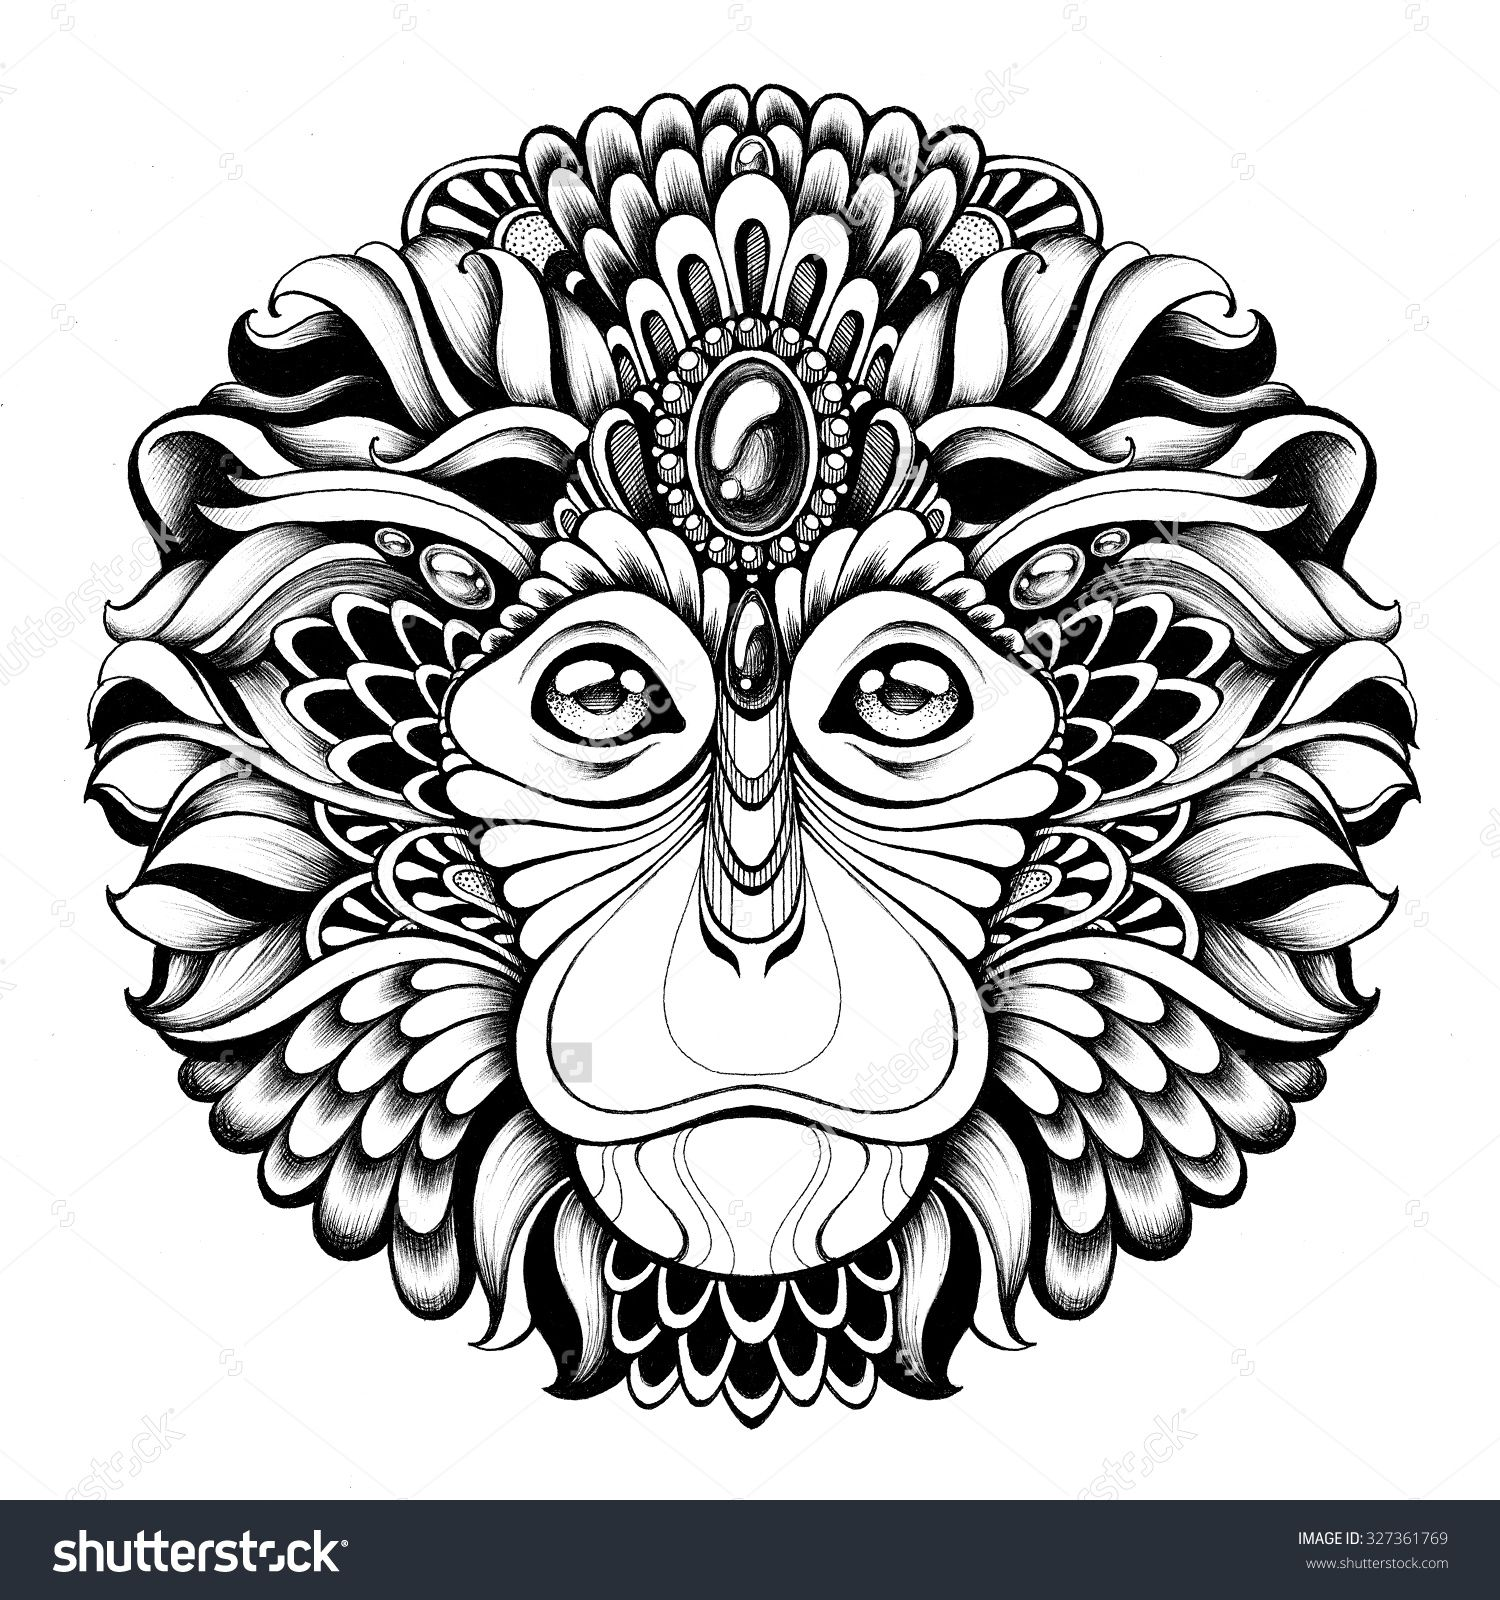 d1e40fddd0 Head monkey with ethnic motifs. Handmade black and white graphics. Tattoo  design, poster, print, T-shirt, greeting card.